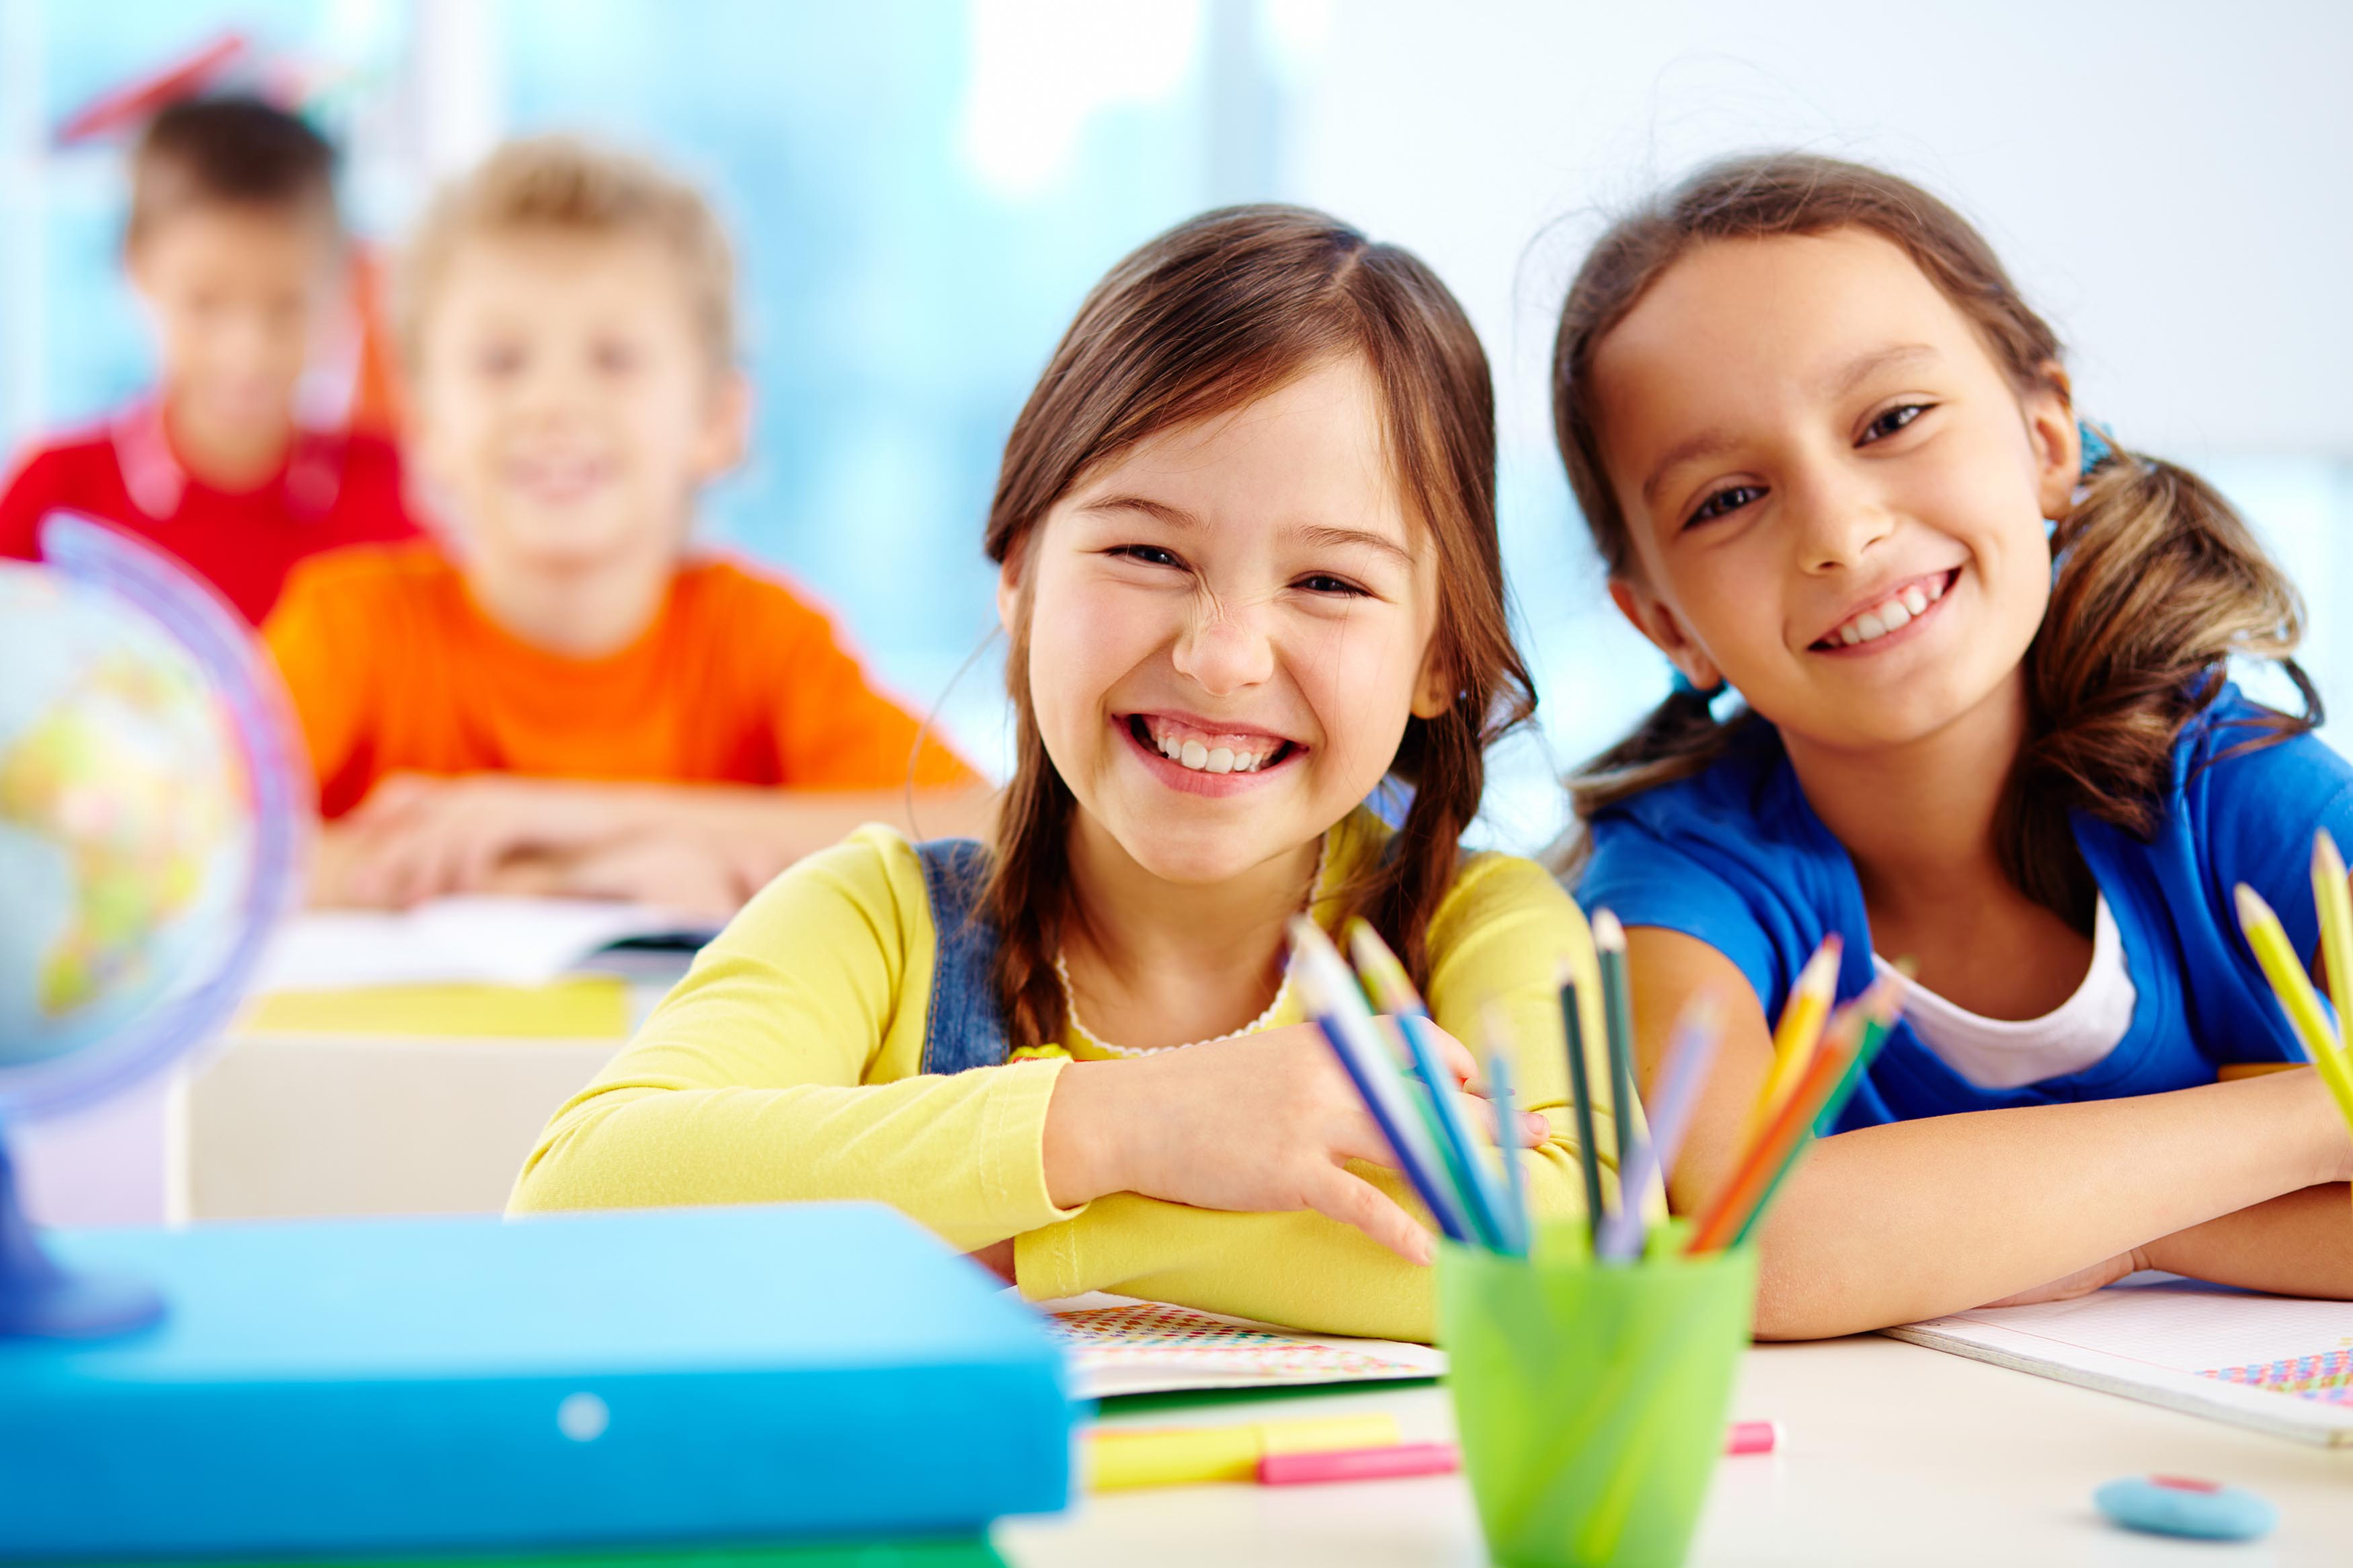 Worksheet Free Online Learning For Kids worksheet free online learning for kids mikyu best from abcmouse com get one